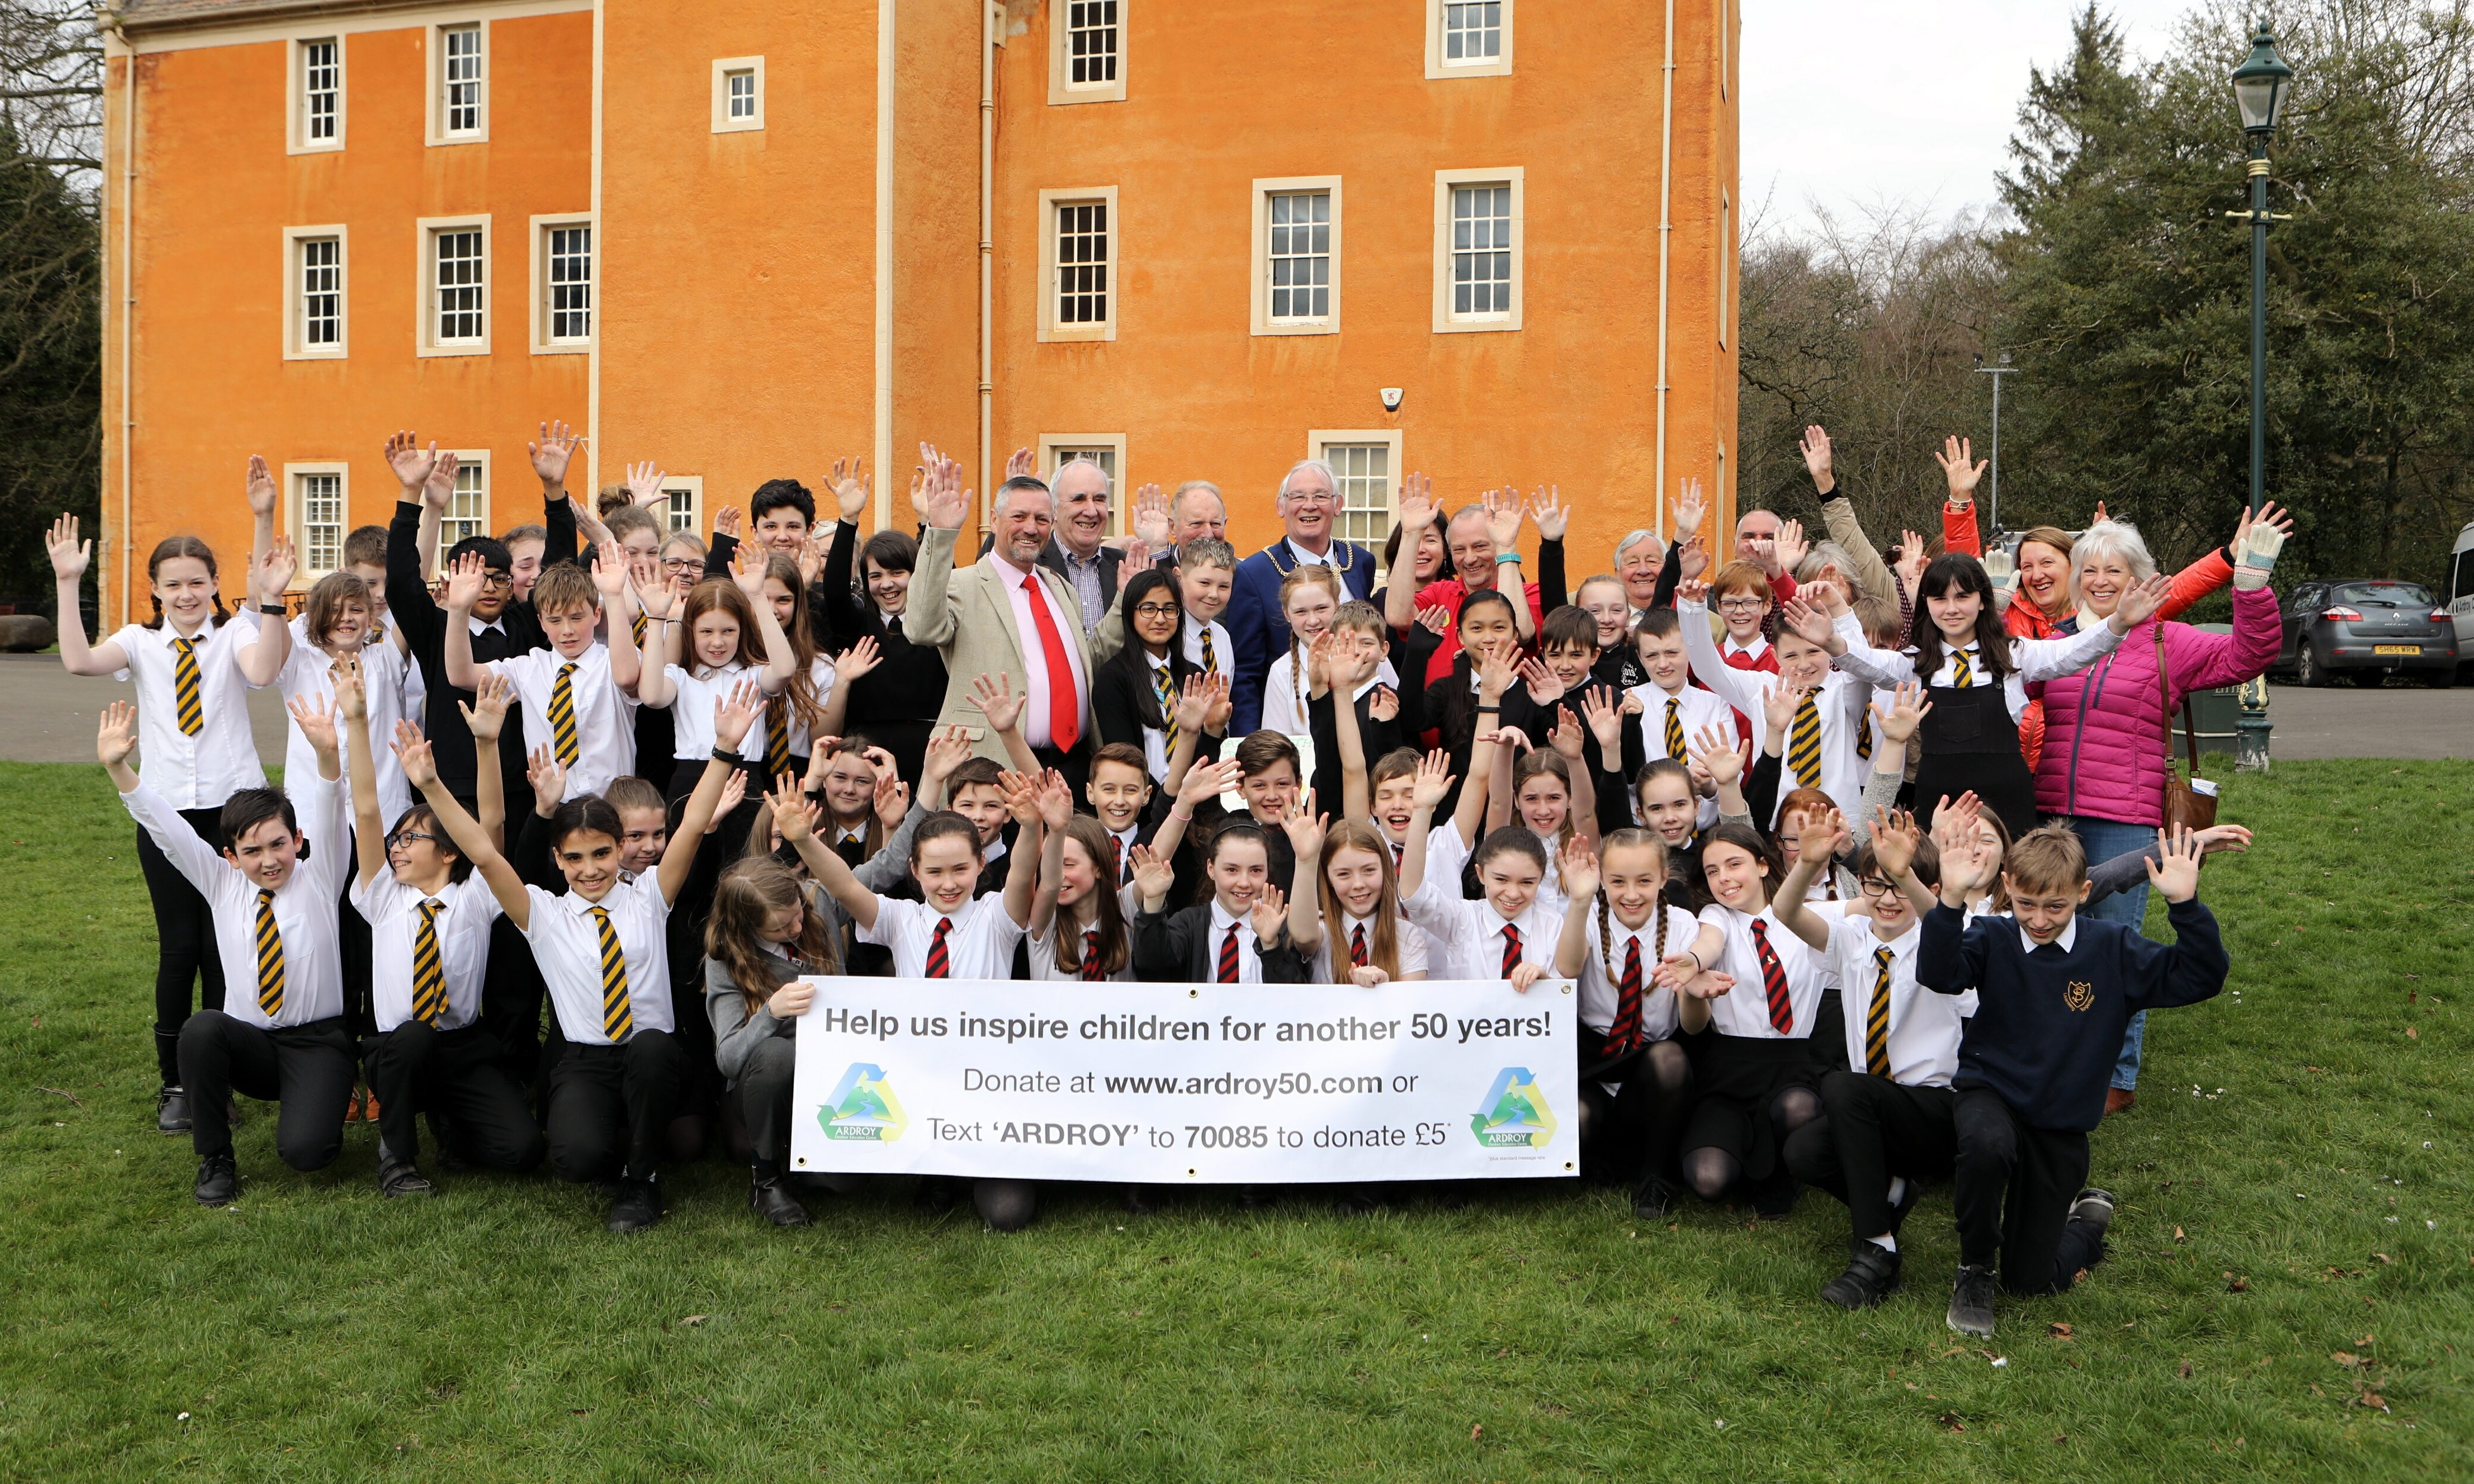 The 50th birthday celebrations of Ardroy Outdoor Education Centre.